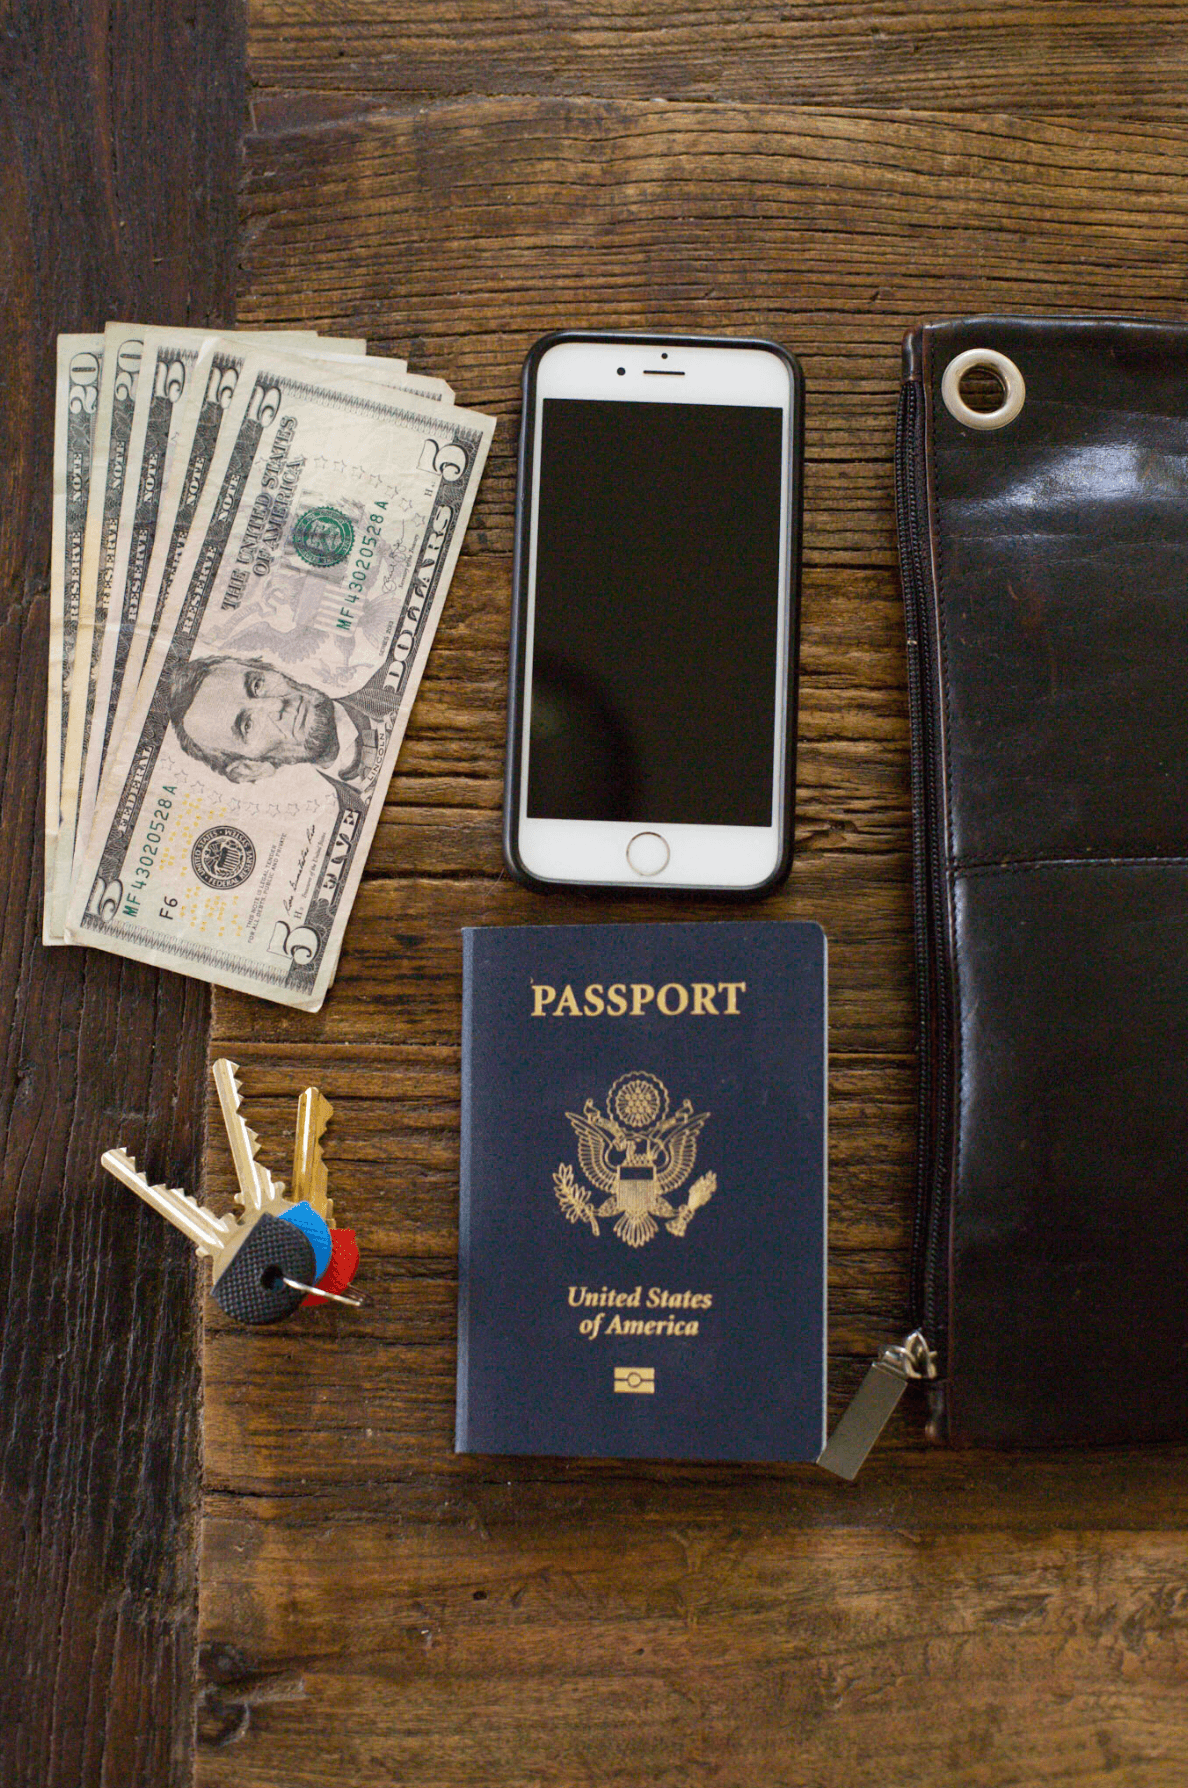 I keep a large wallet (which can double as a handbag) tucked in an inside pocket of the backpack. For a similar wallet, consider a 10.5-inch-long Black Leather Clutch Bag with a wrist strap ($105 from ThePurseCo via Etsy).